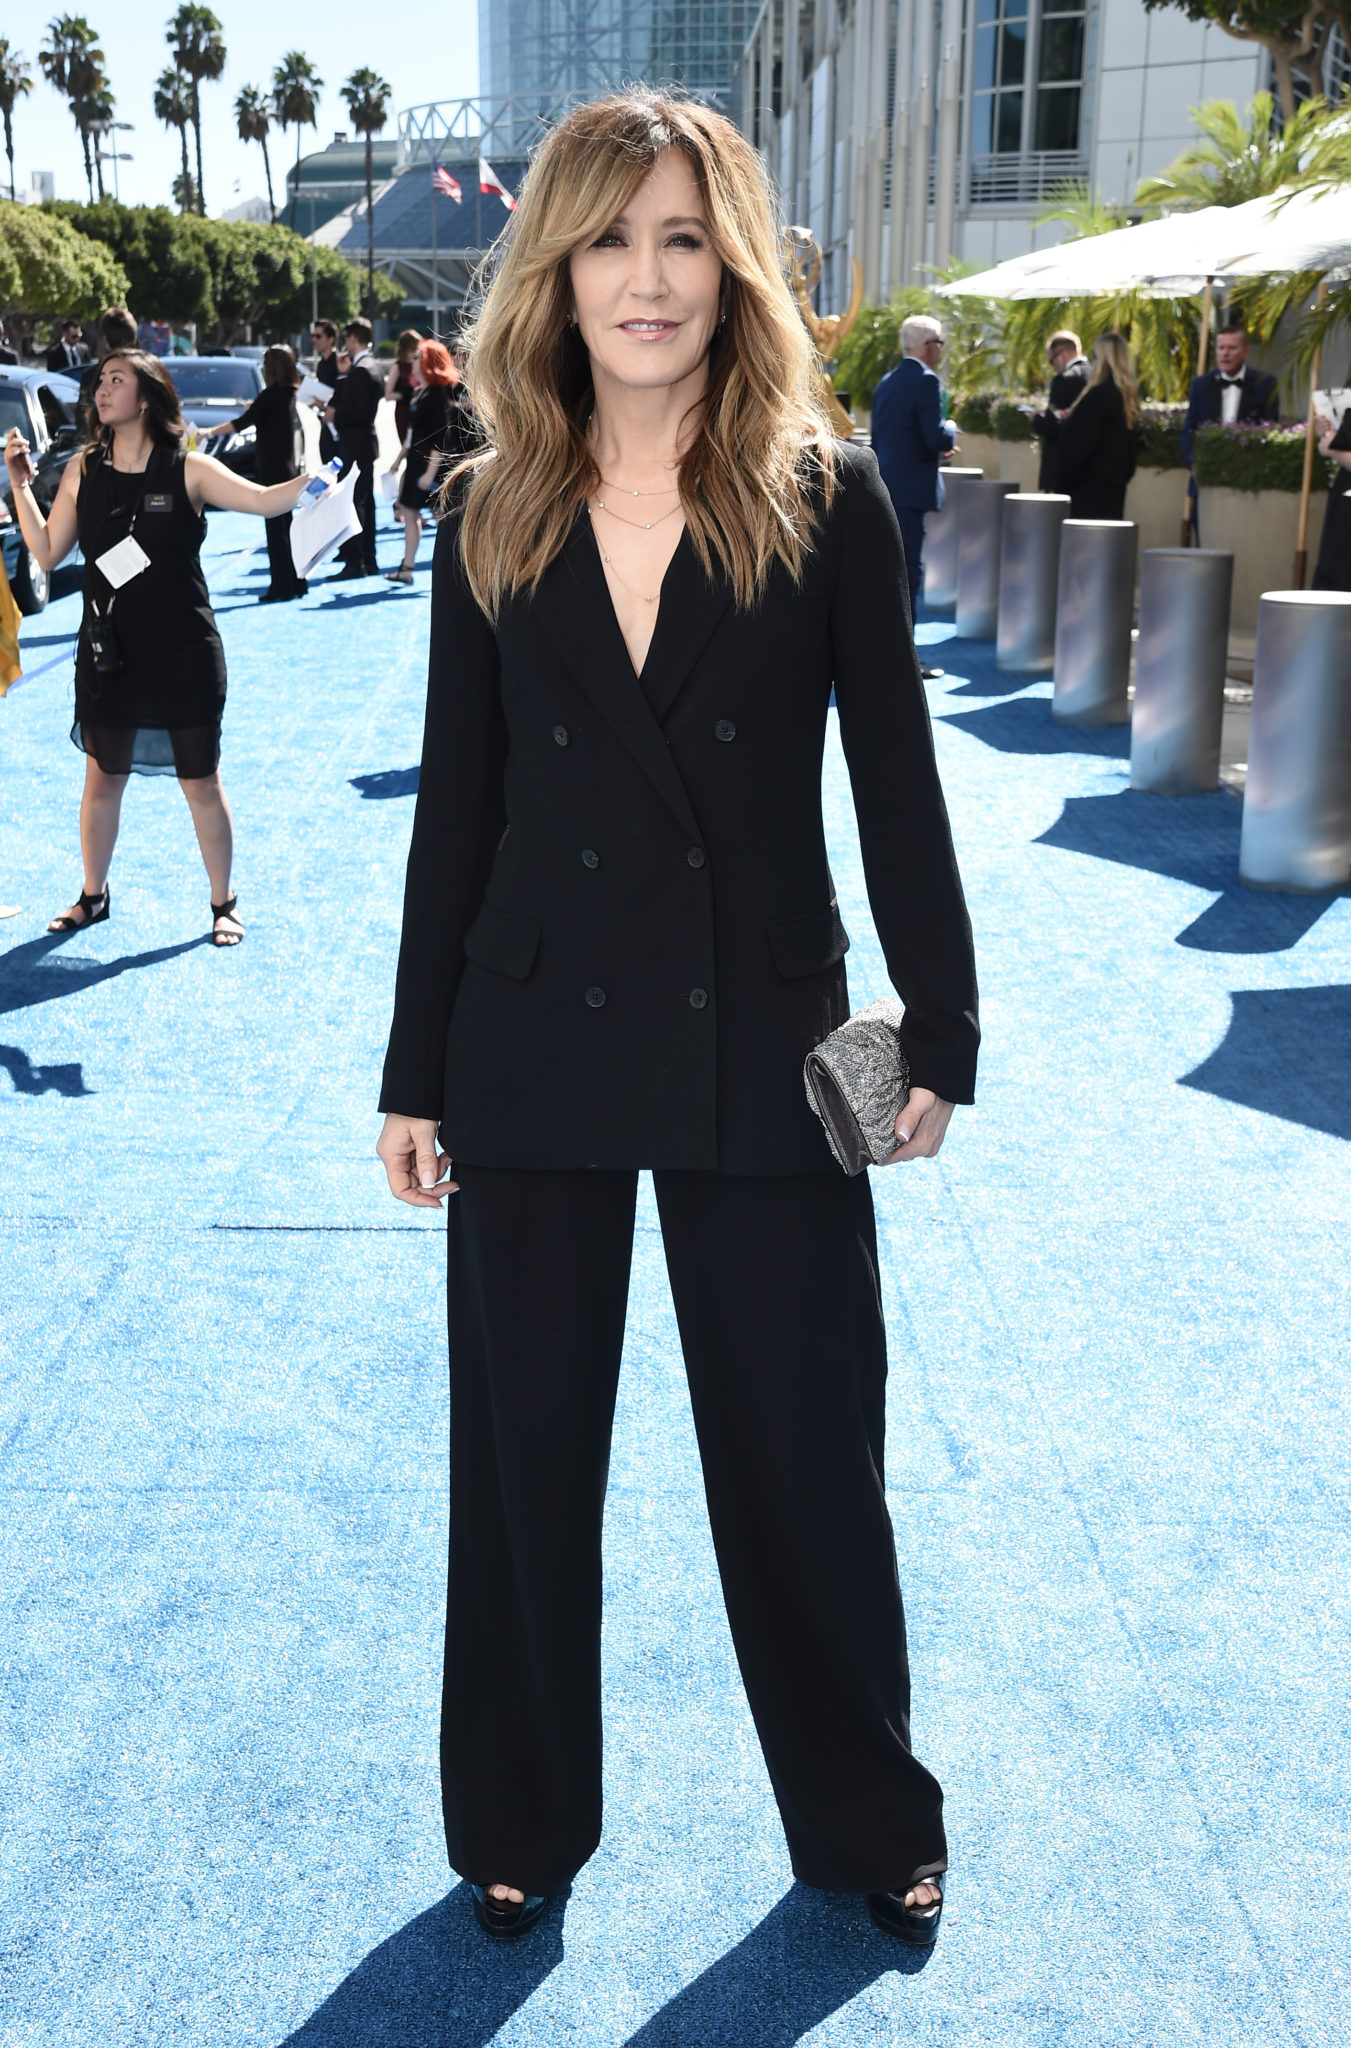 Felicity Huffman Emmys 4Chion Lifestyle